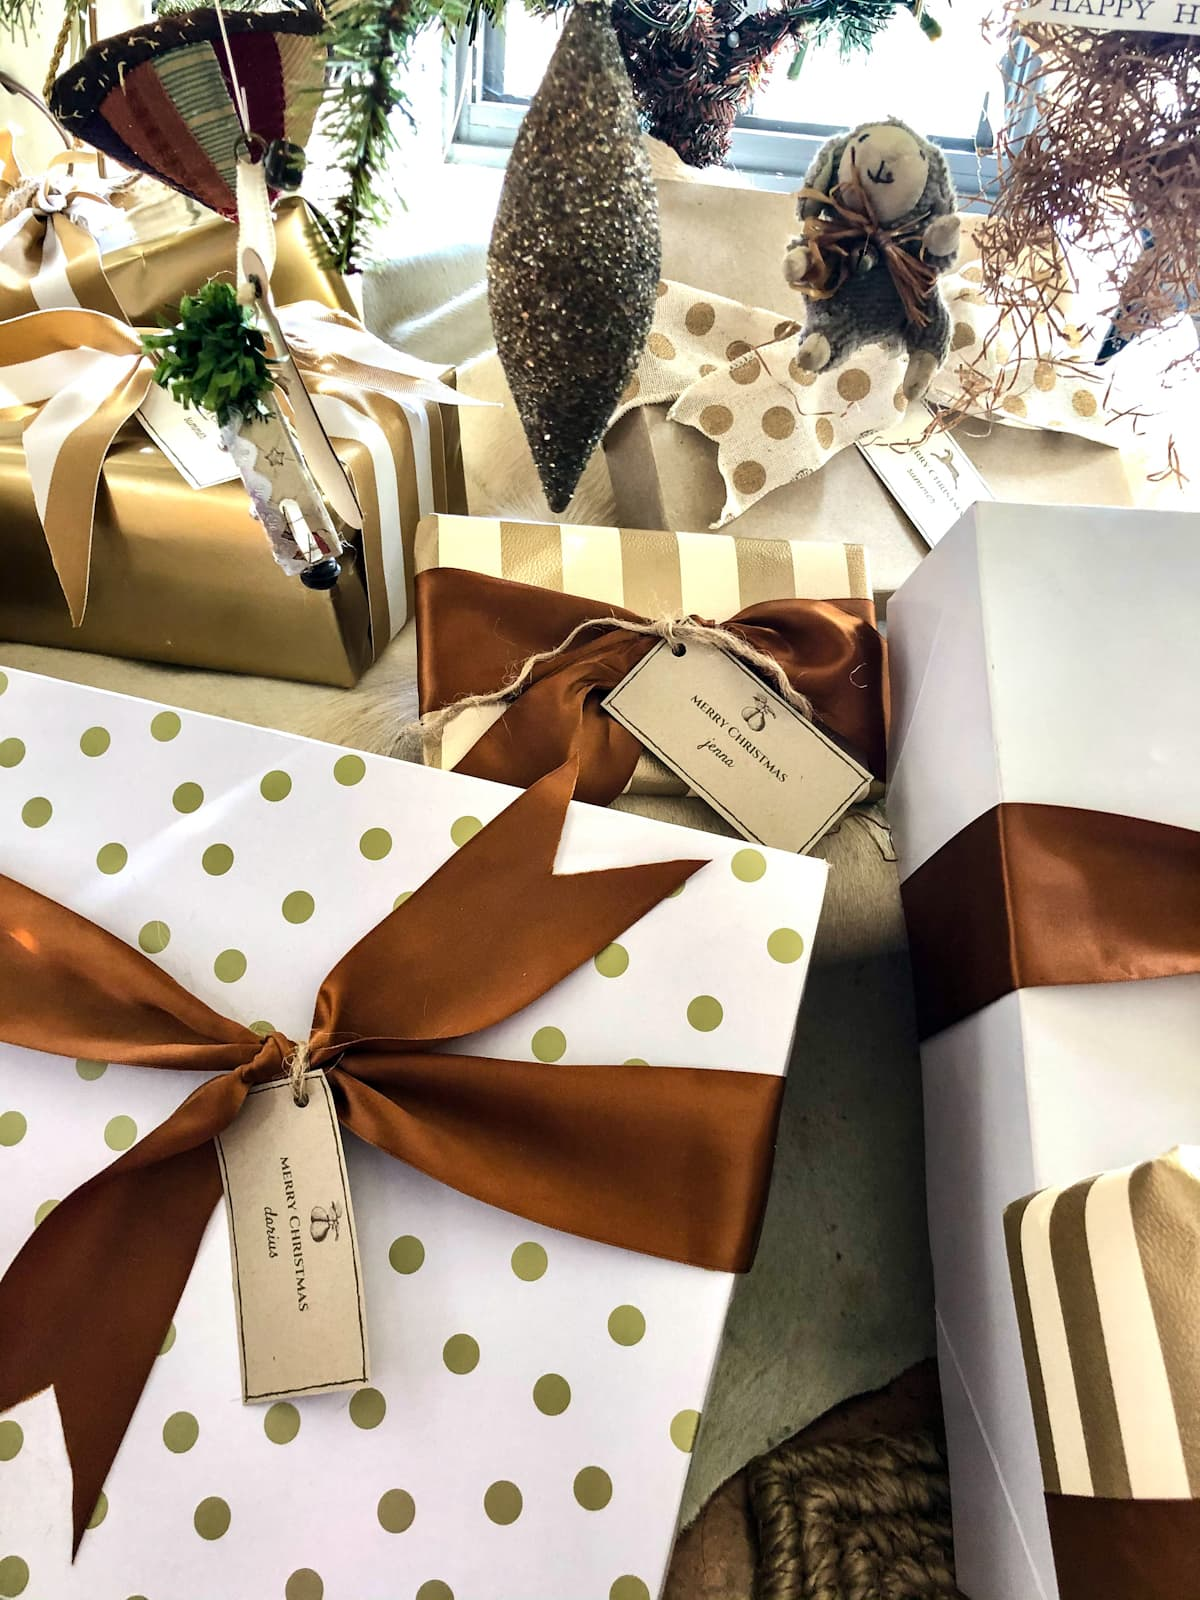 CINDY HATTERSLEY CHRISTMAS PACKAGES